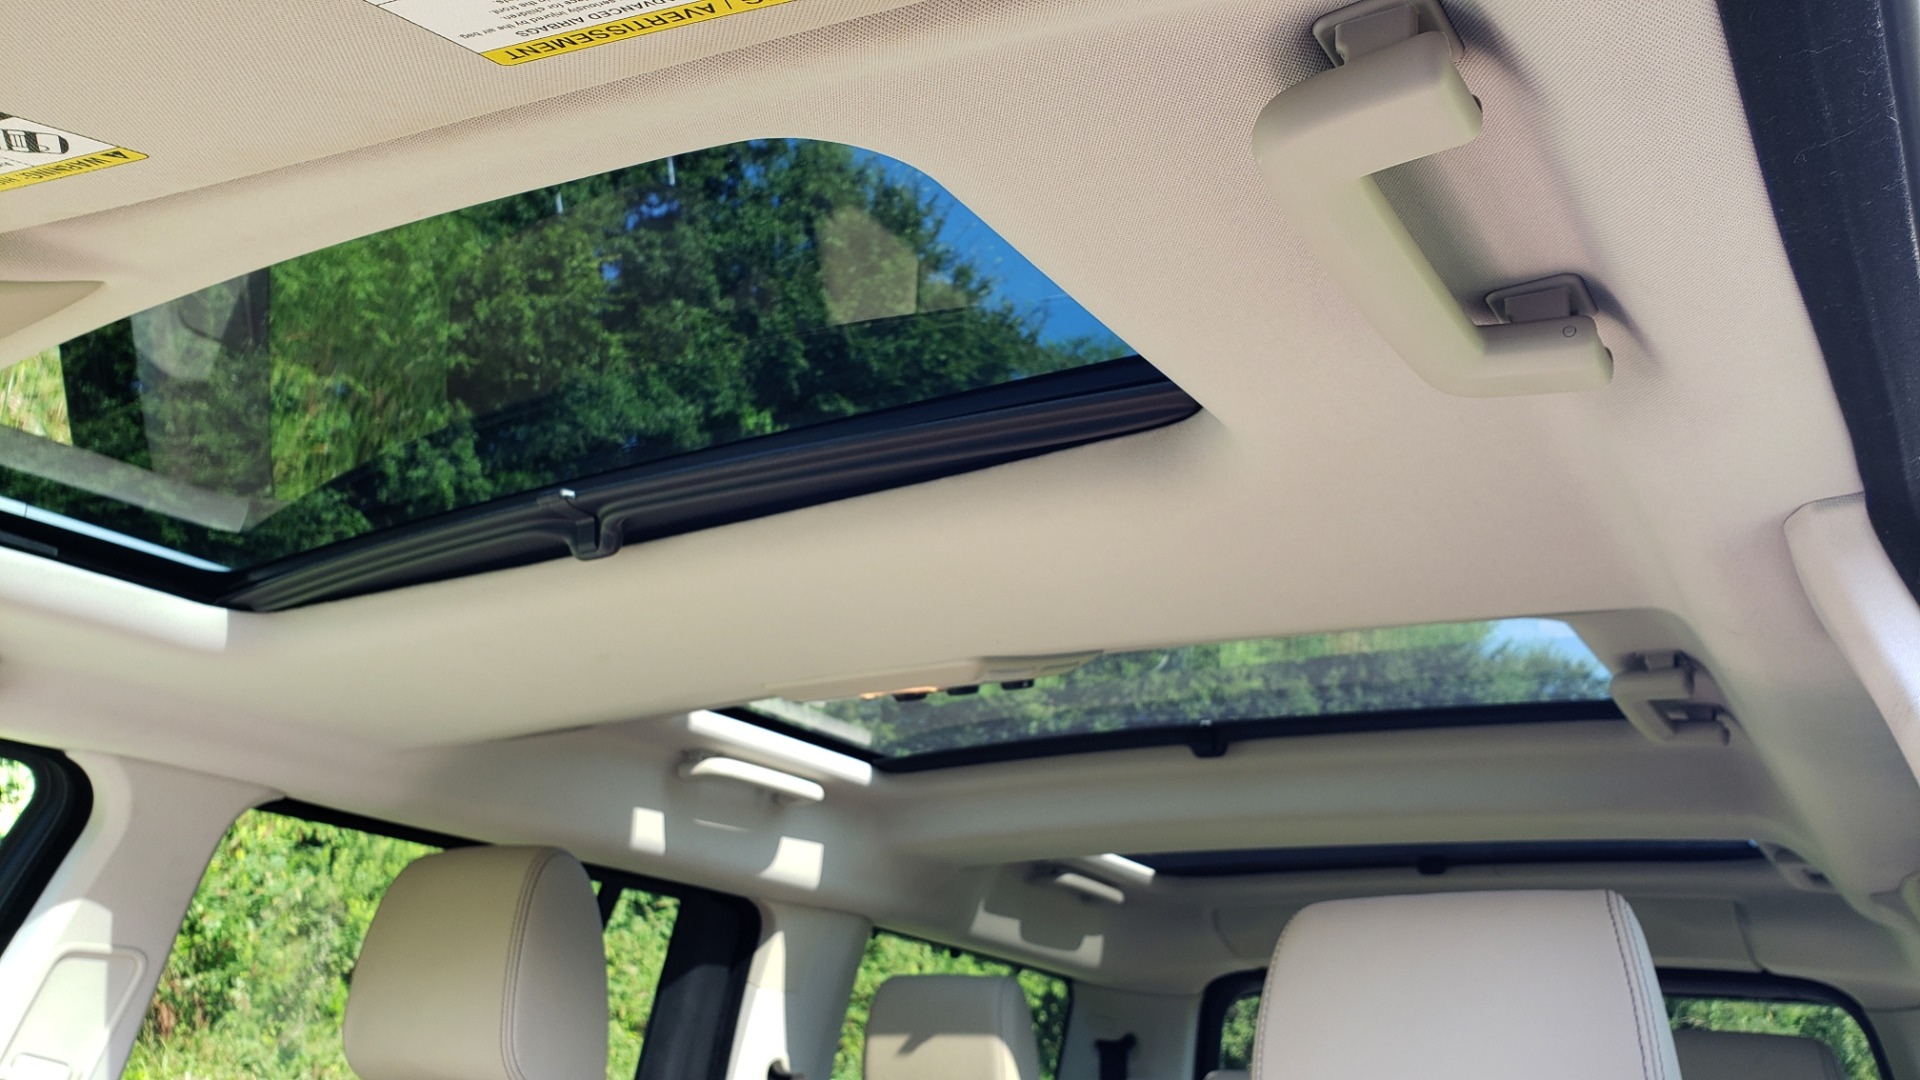 Used 2016 Land Rover LR4 HSE LUX LANDMARK EDITION / NAV / HTD STS / SUNROOF / REARVIEW for sale Sold at Formula Imports in Charlotte NC 28227 57